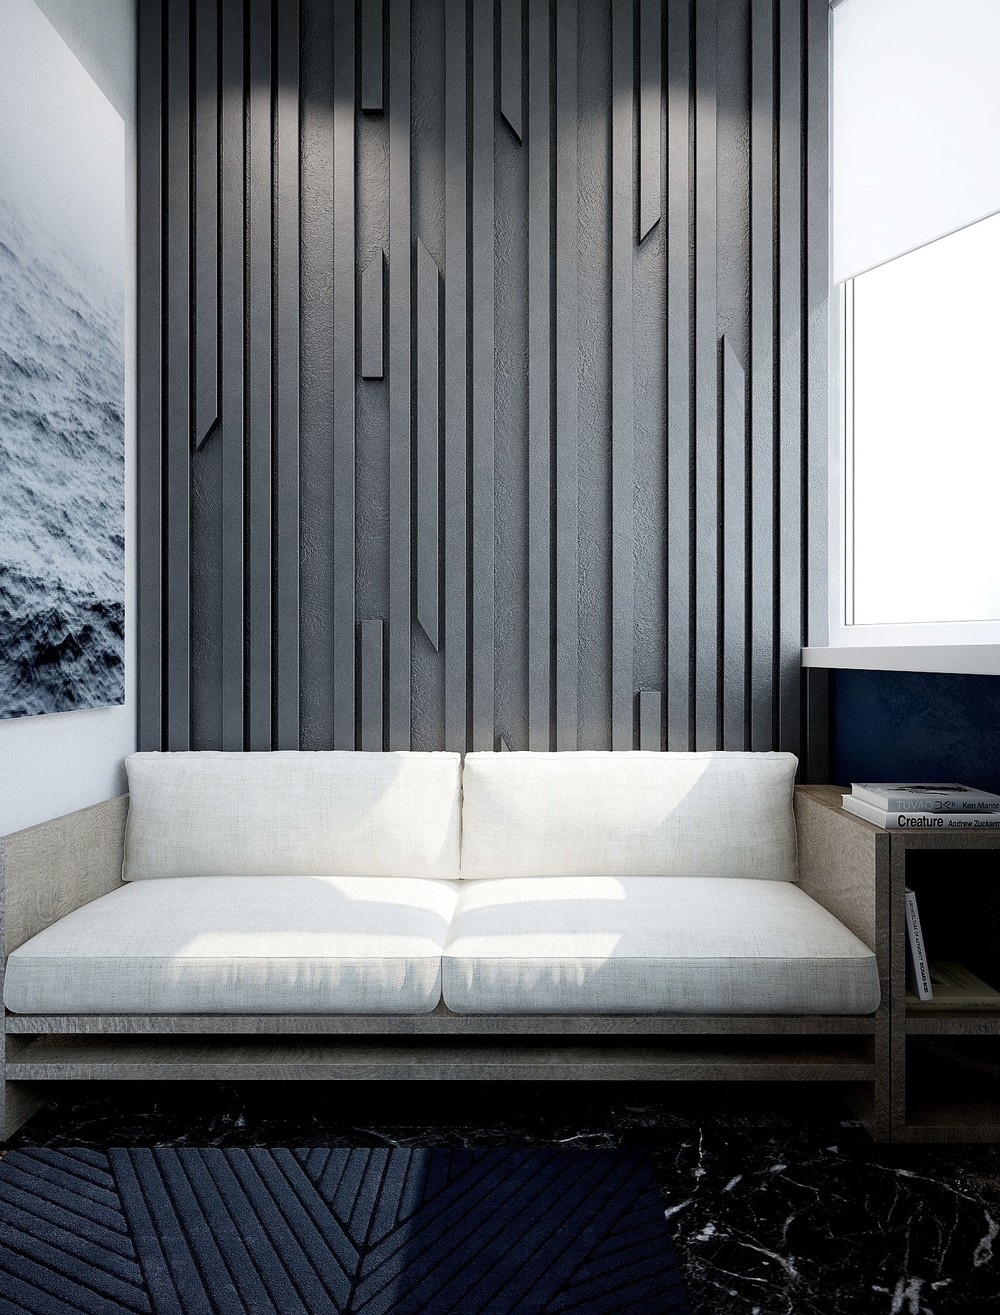 Textured Walls And Floor Elegant Living Room - 3 small studio apartments that exude luxurious space